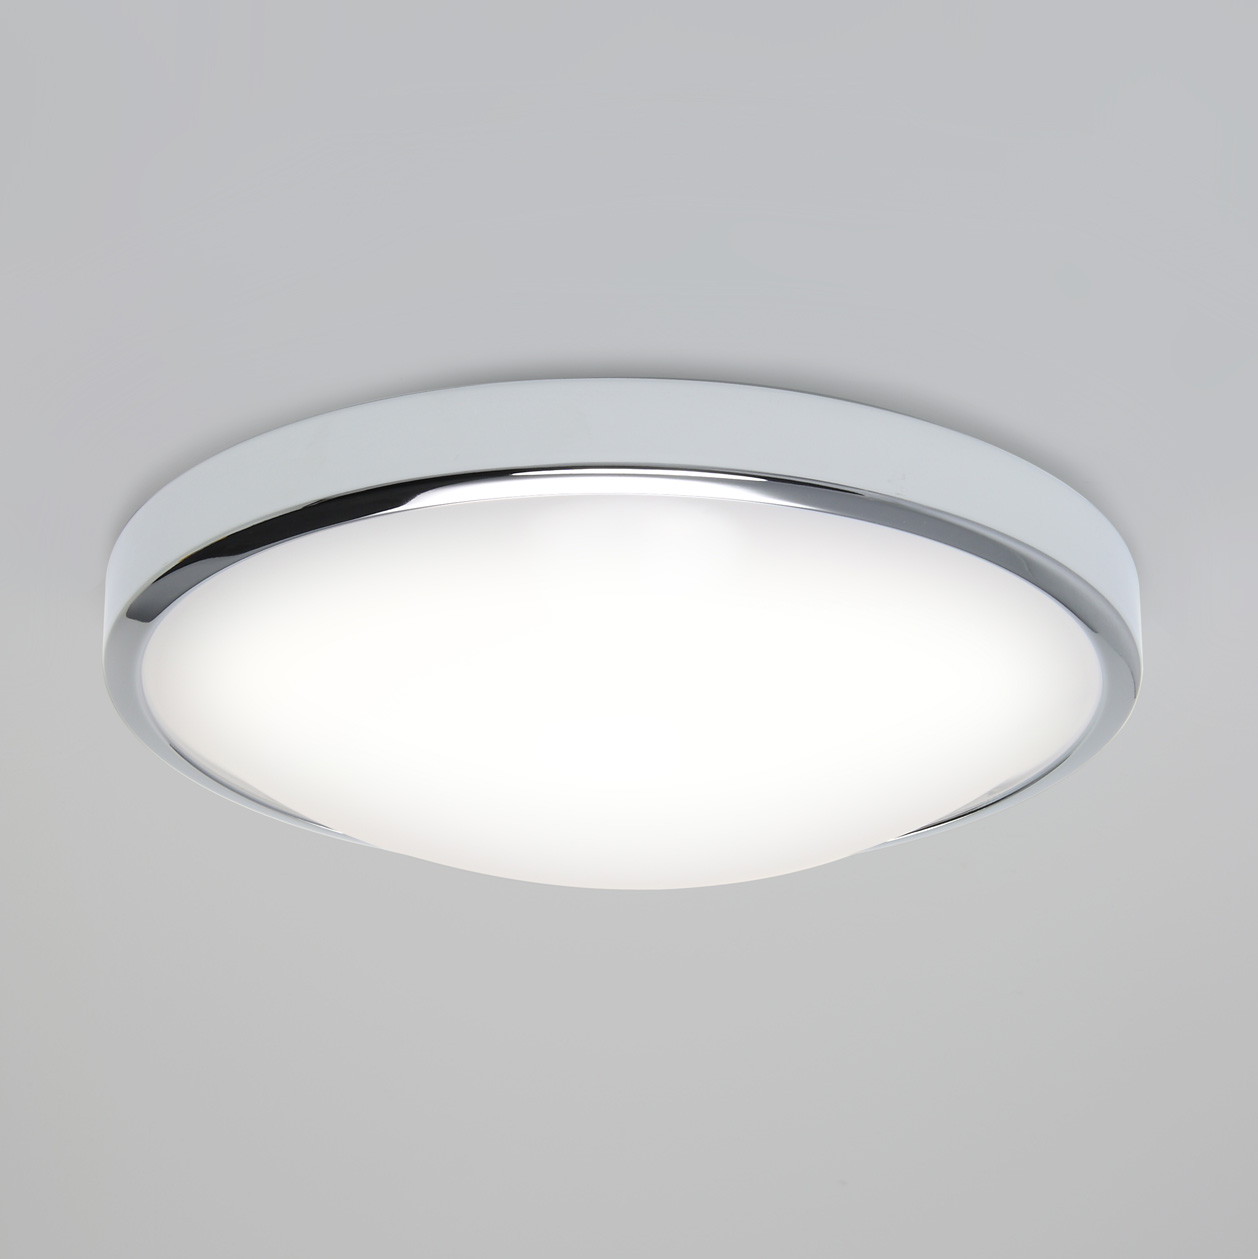 Astro Osaka 350 LED round bathroom ceiling wall light chrome 24W warm white IP44